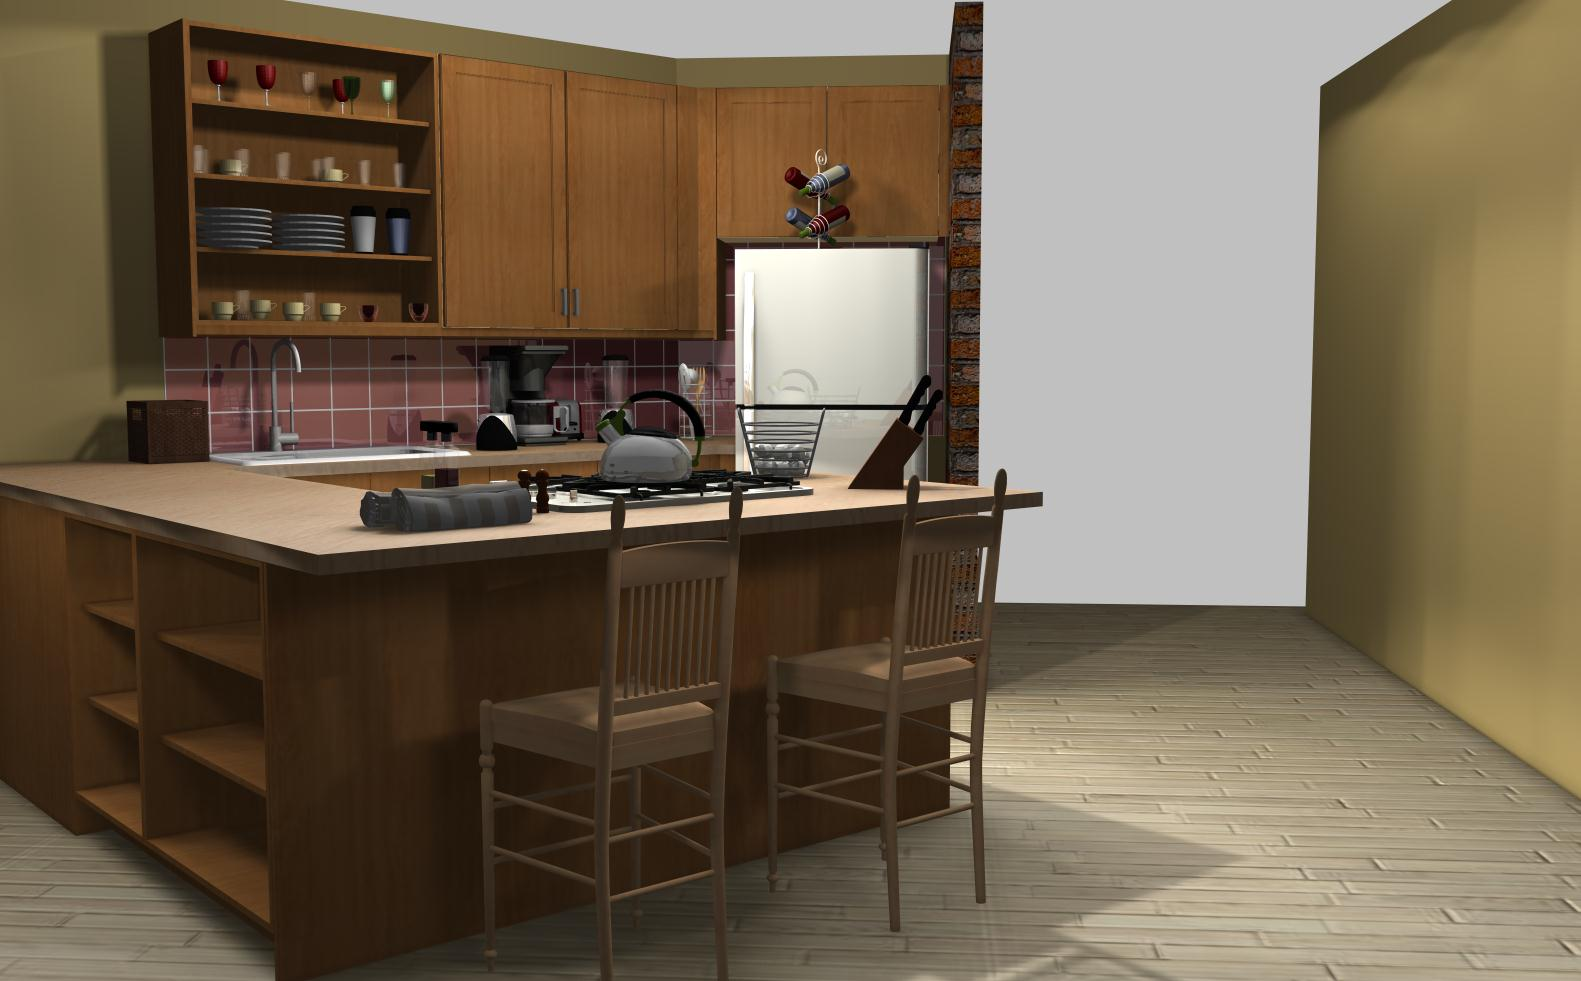 Famous Kitchens Get The Look The Big Bang Theory Penny